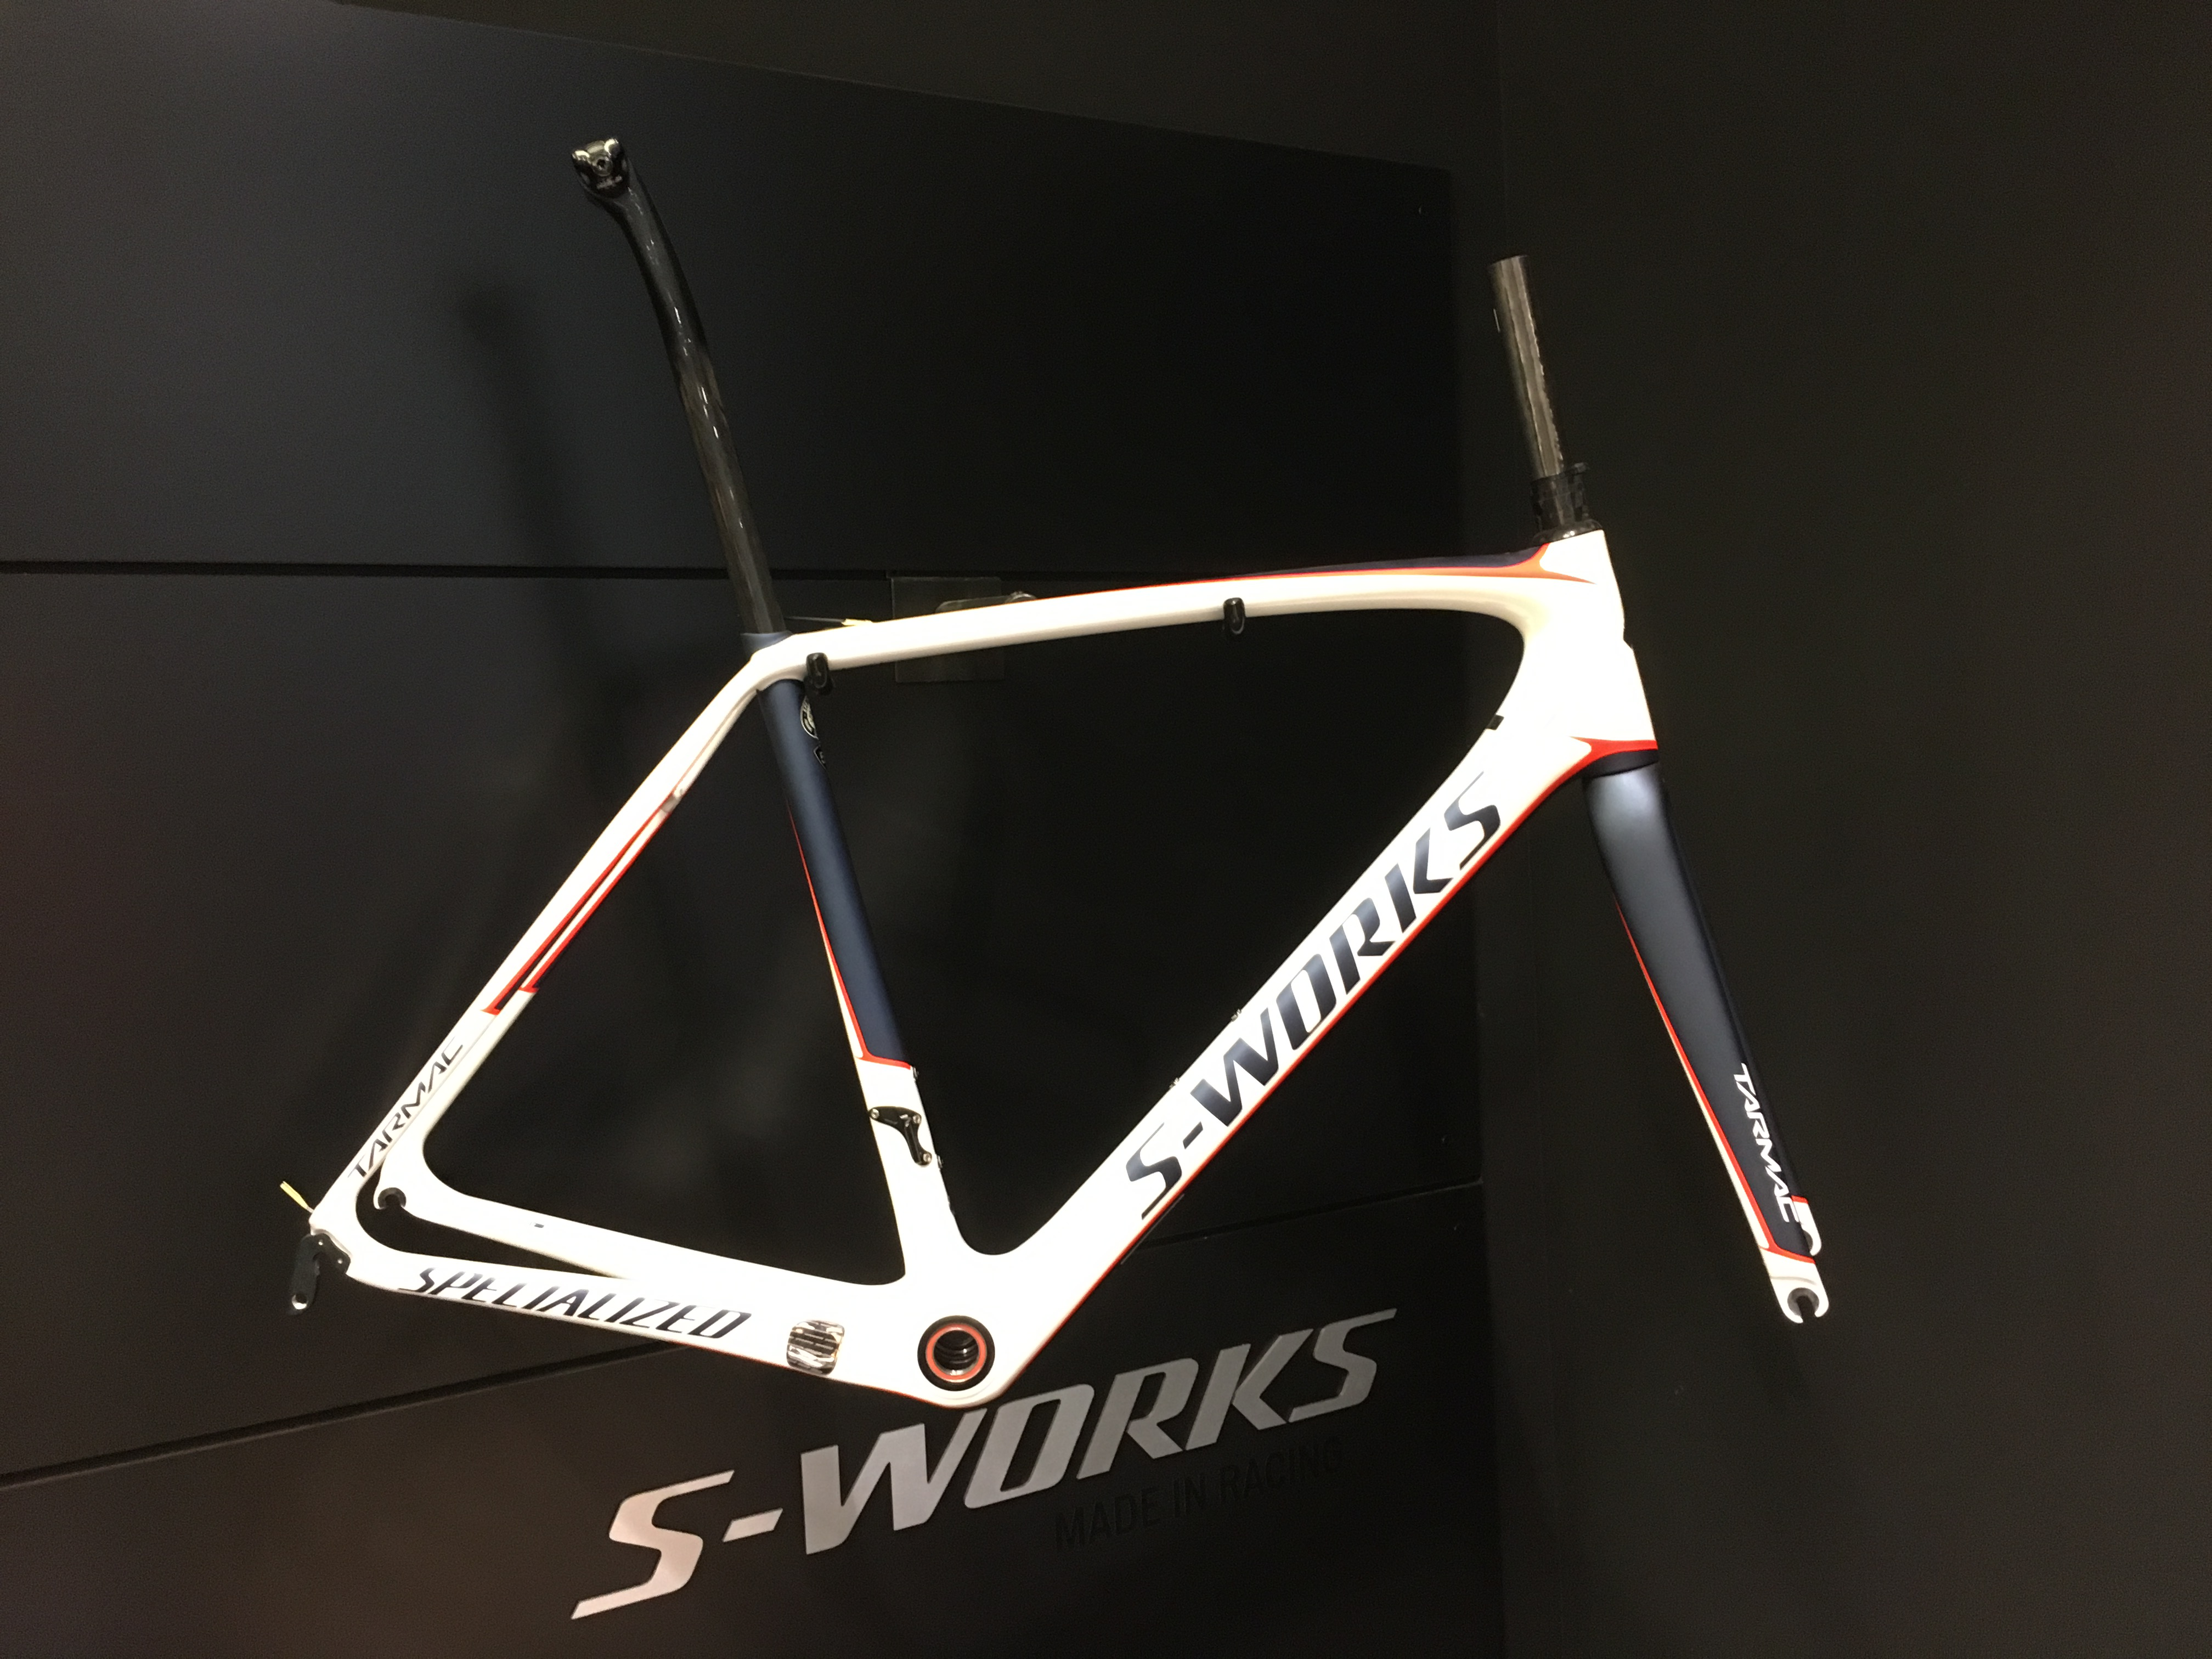 Cadre Specialized S-Works Tarmac 56 2017 Image